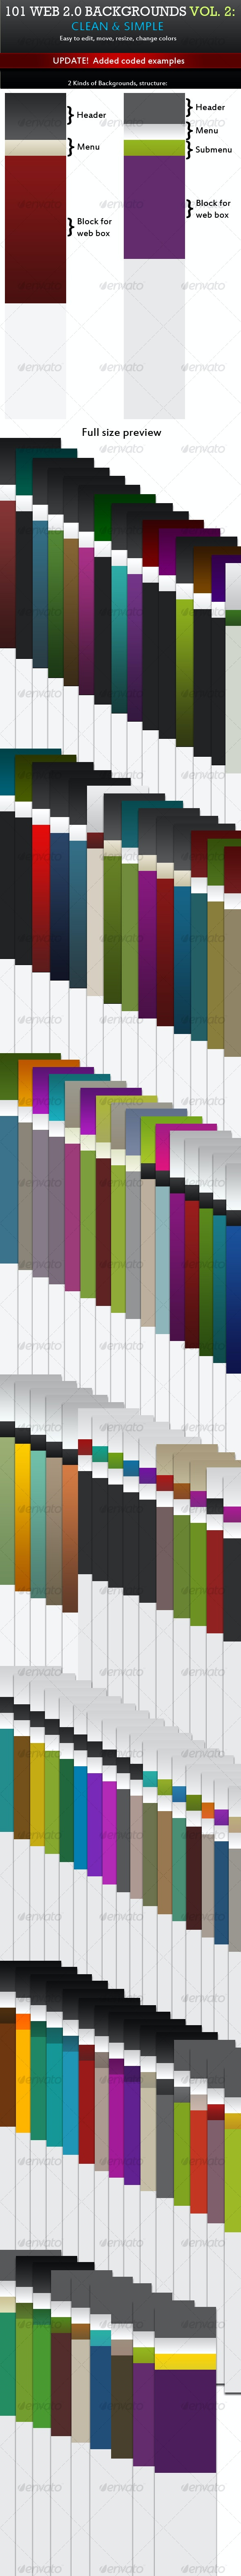 101 Web 2.0 Backgrounds VOL. 2 - Backgrounds Graphics